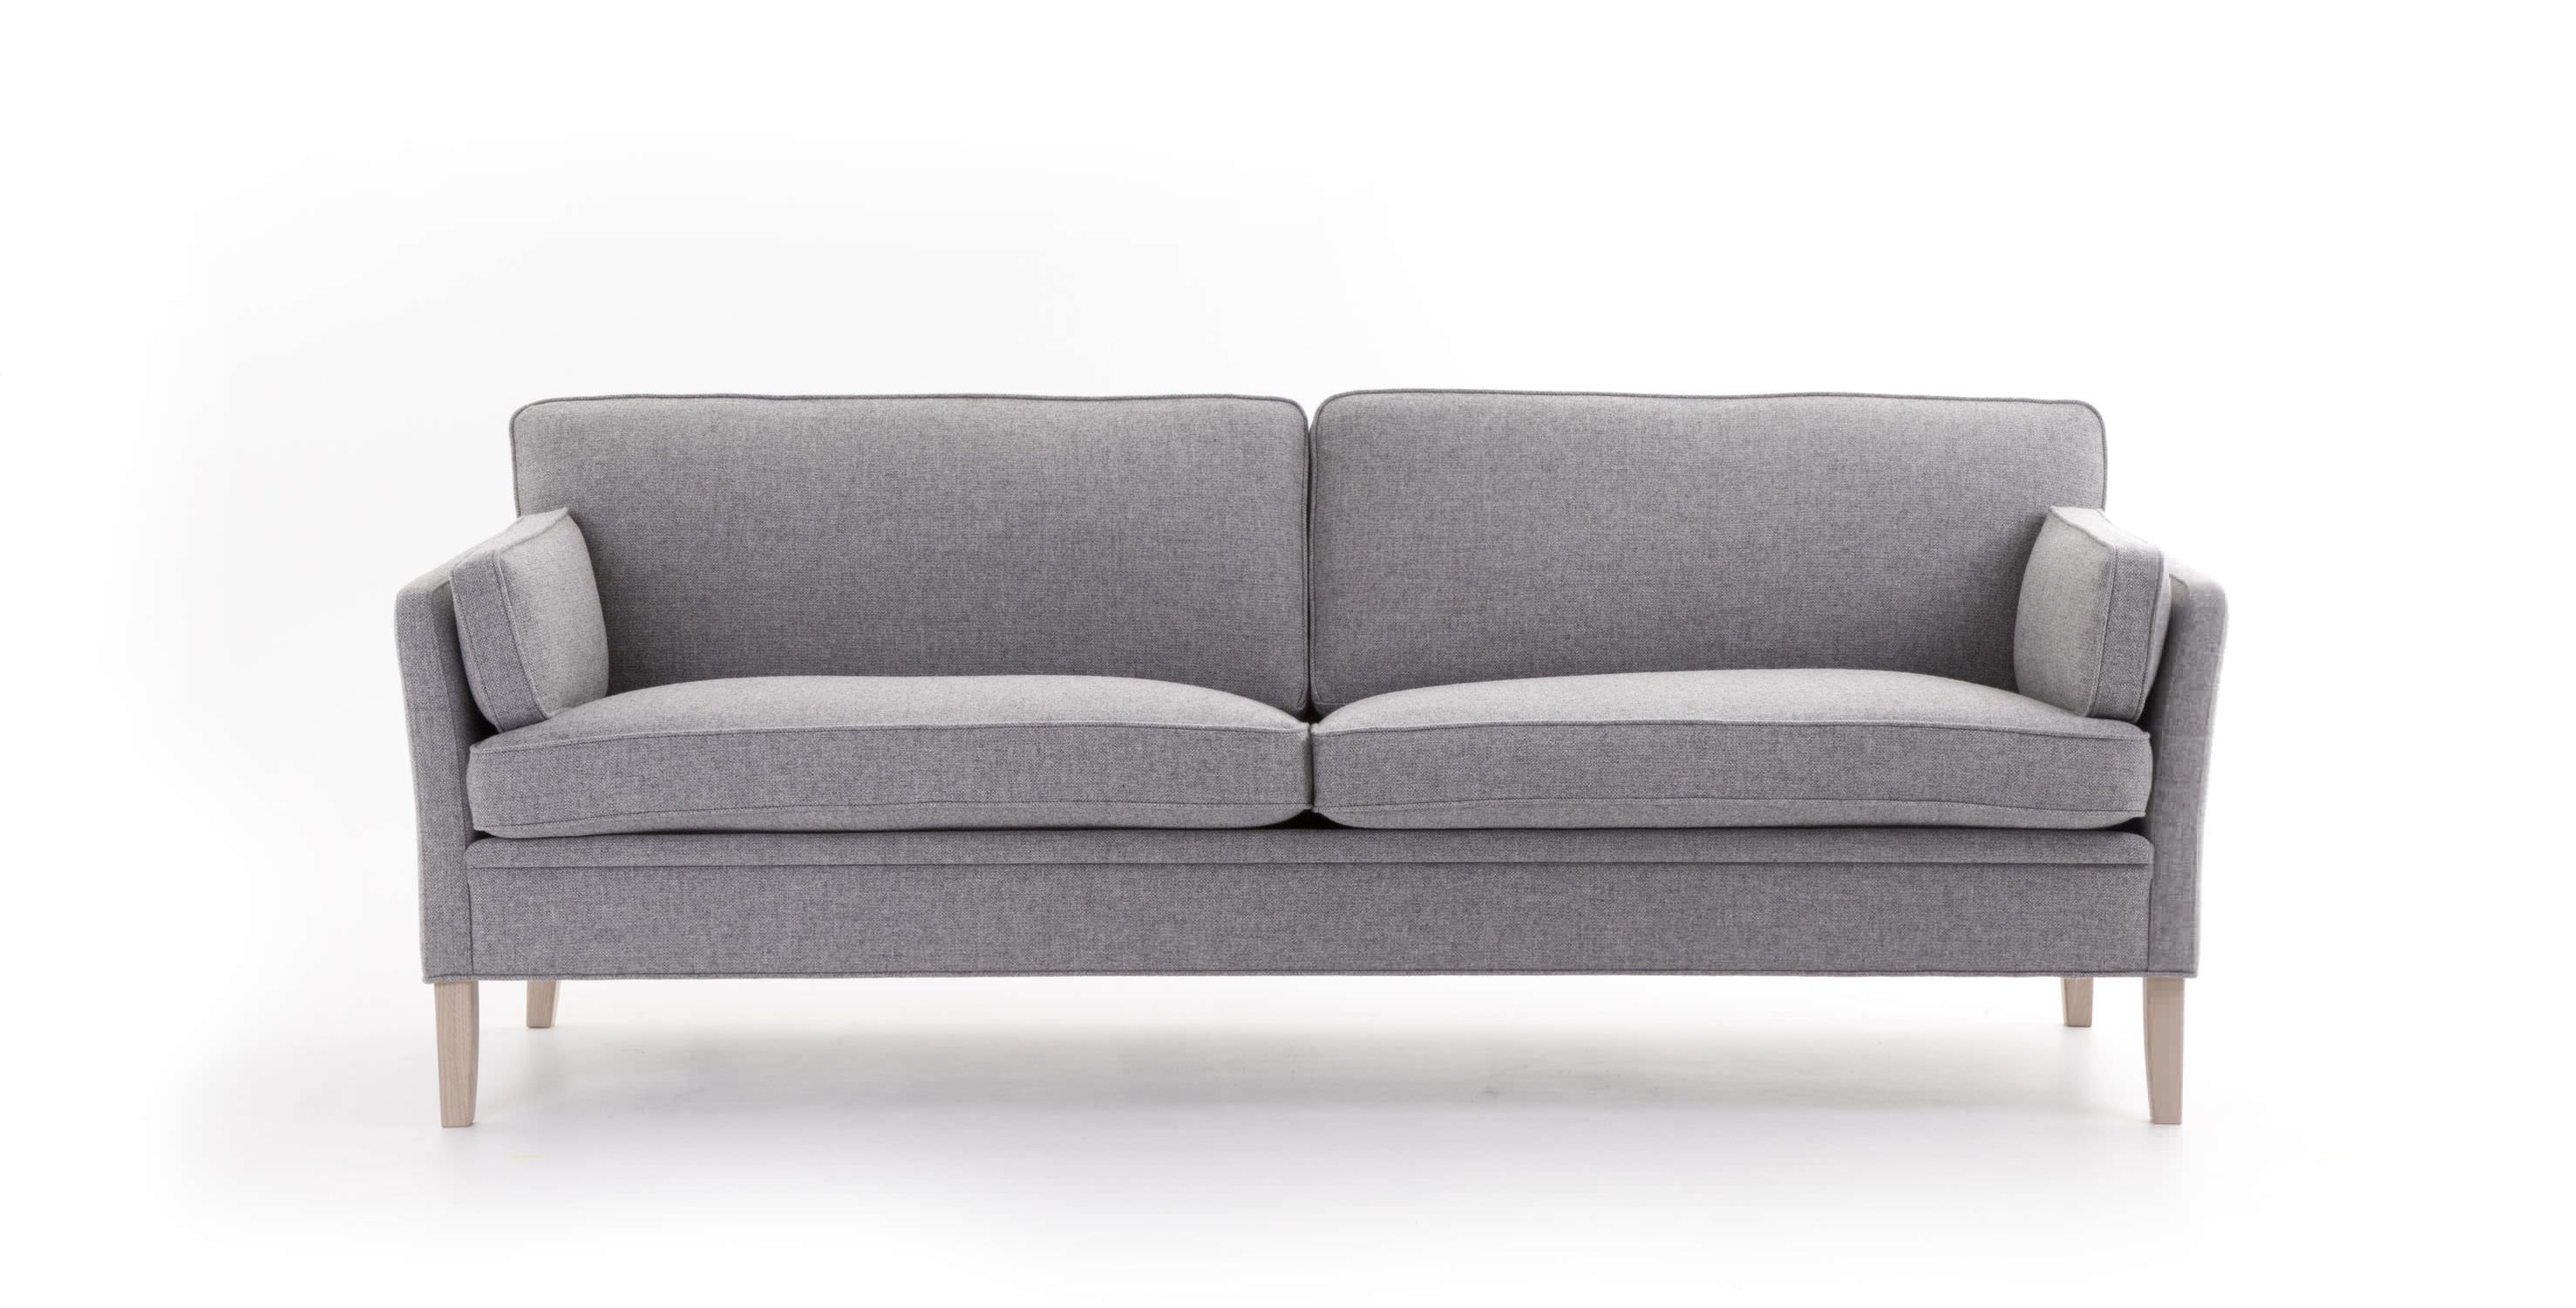 Traditional Sofa Fabric 2 Seater With Removable Cover In Sofas With Removable Covers (Image 15 of 15)